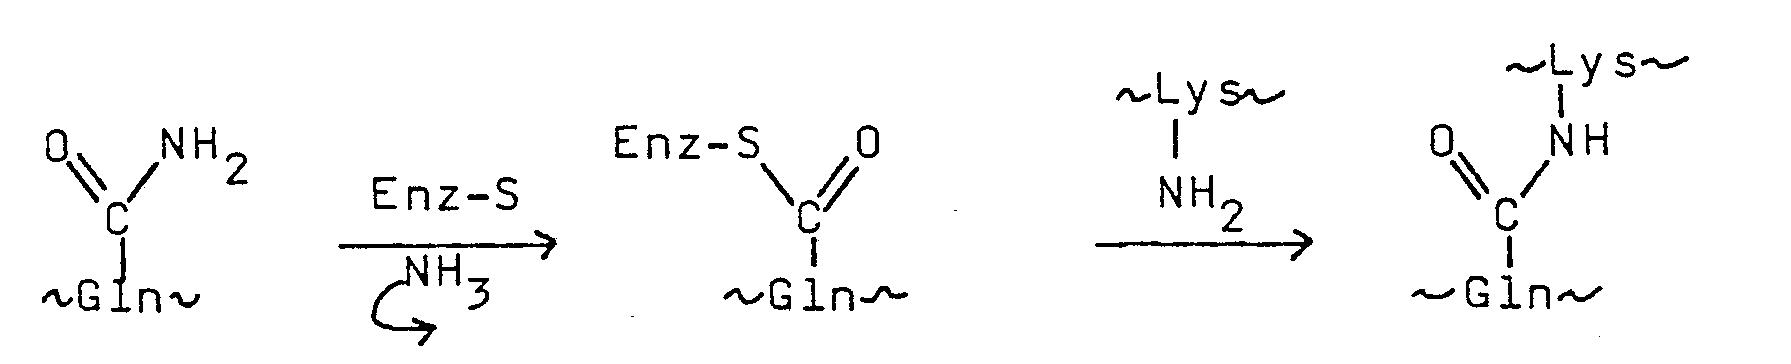 专利ep0237082a2 - 3,5-disubstituted